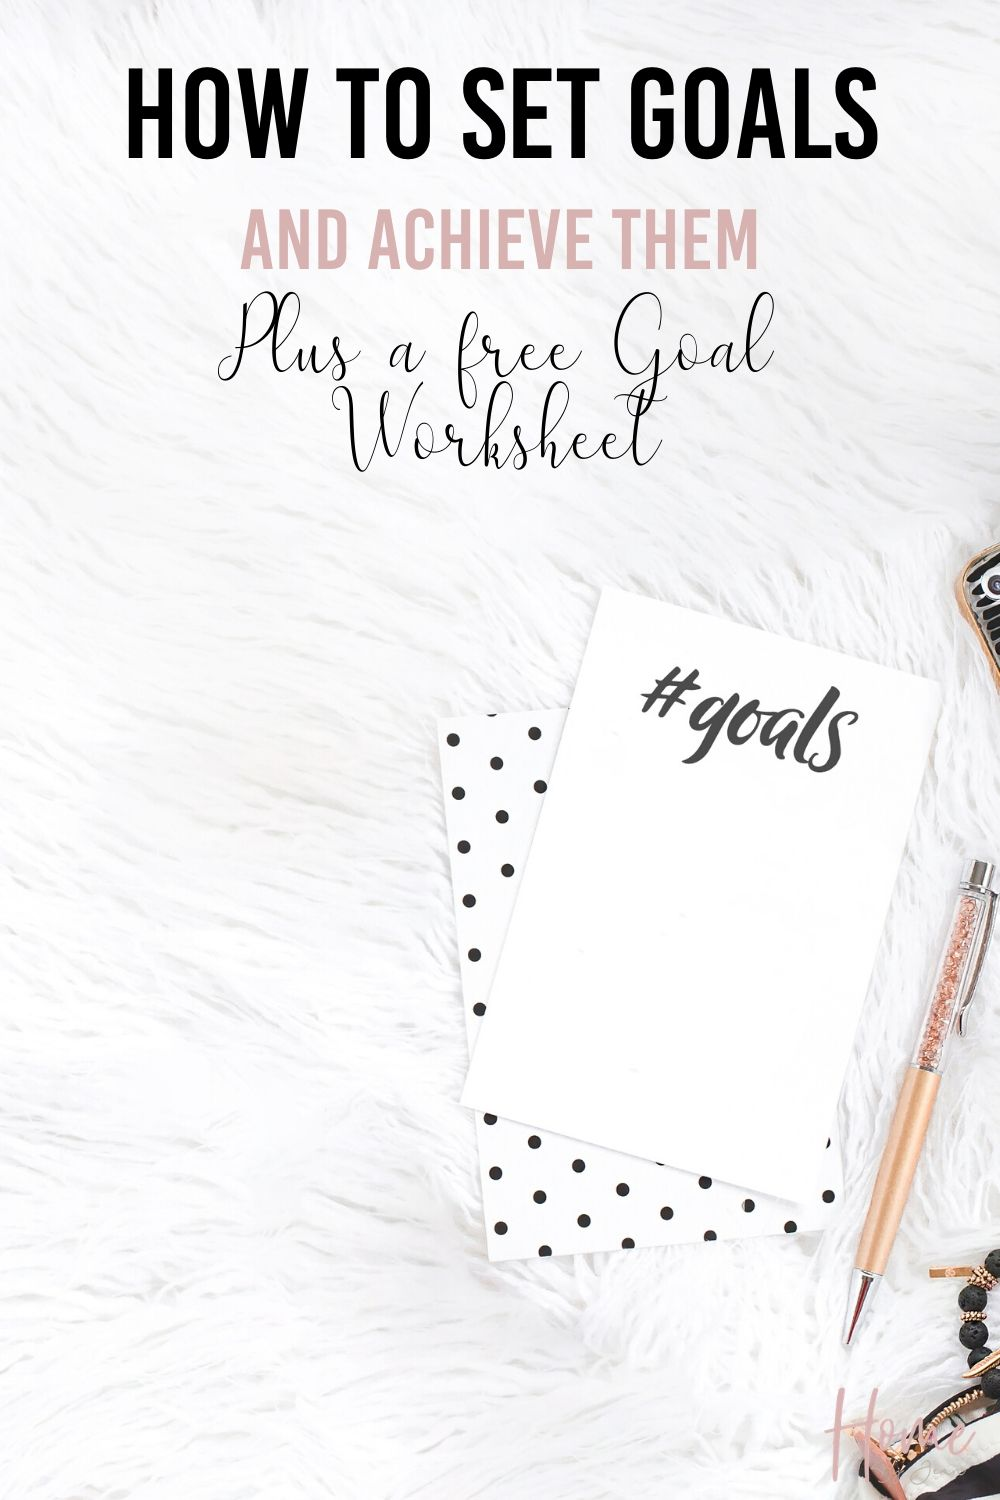 How to Set Goals and Achieve Them via @homebyjenn